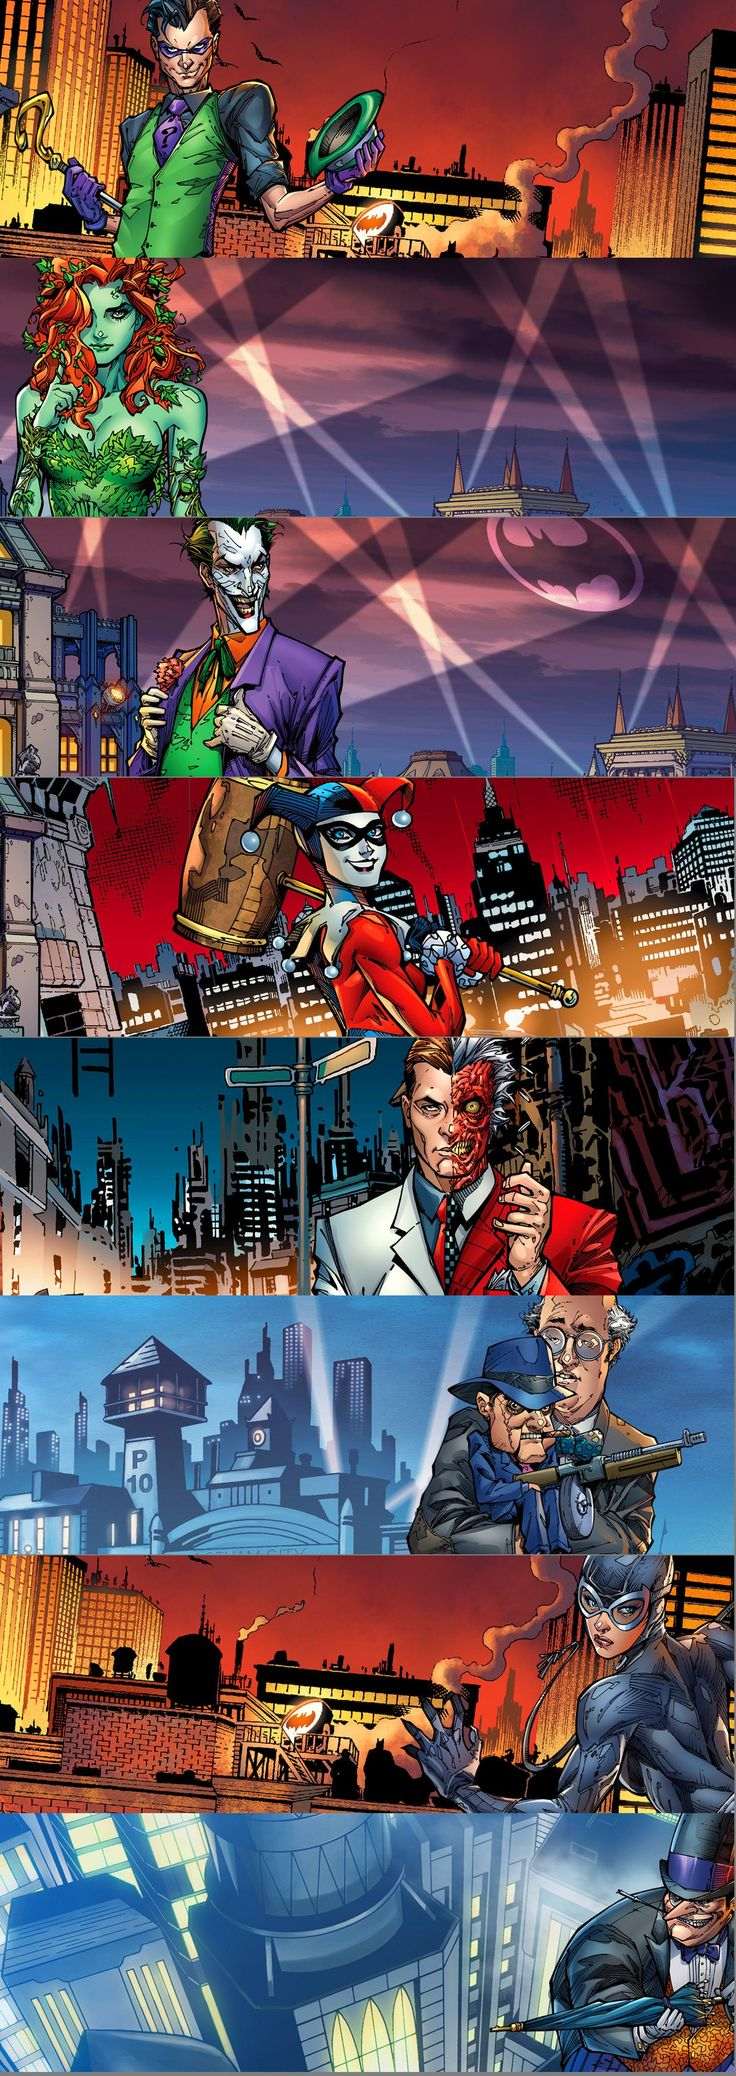 Batman - Riddler, Poison Ivy, Joker, Harley Quinn, Two-Face, Scarface, Catwoman, and Penguin